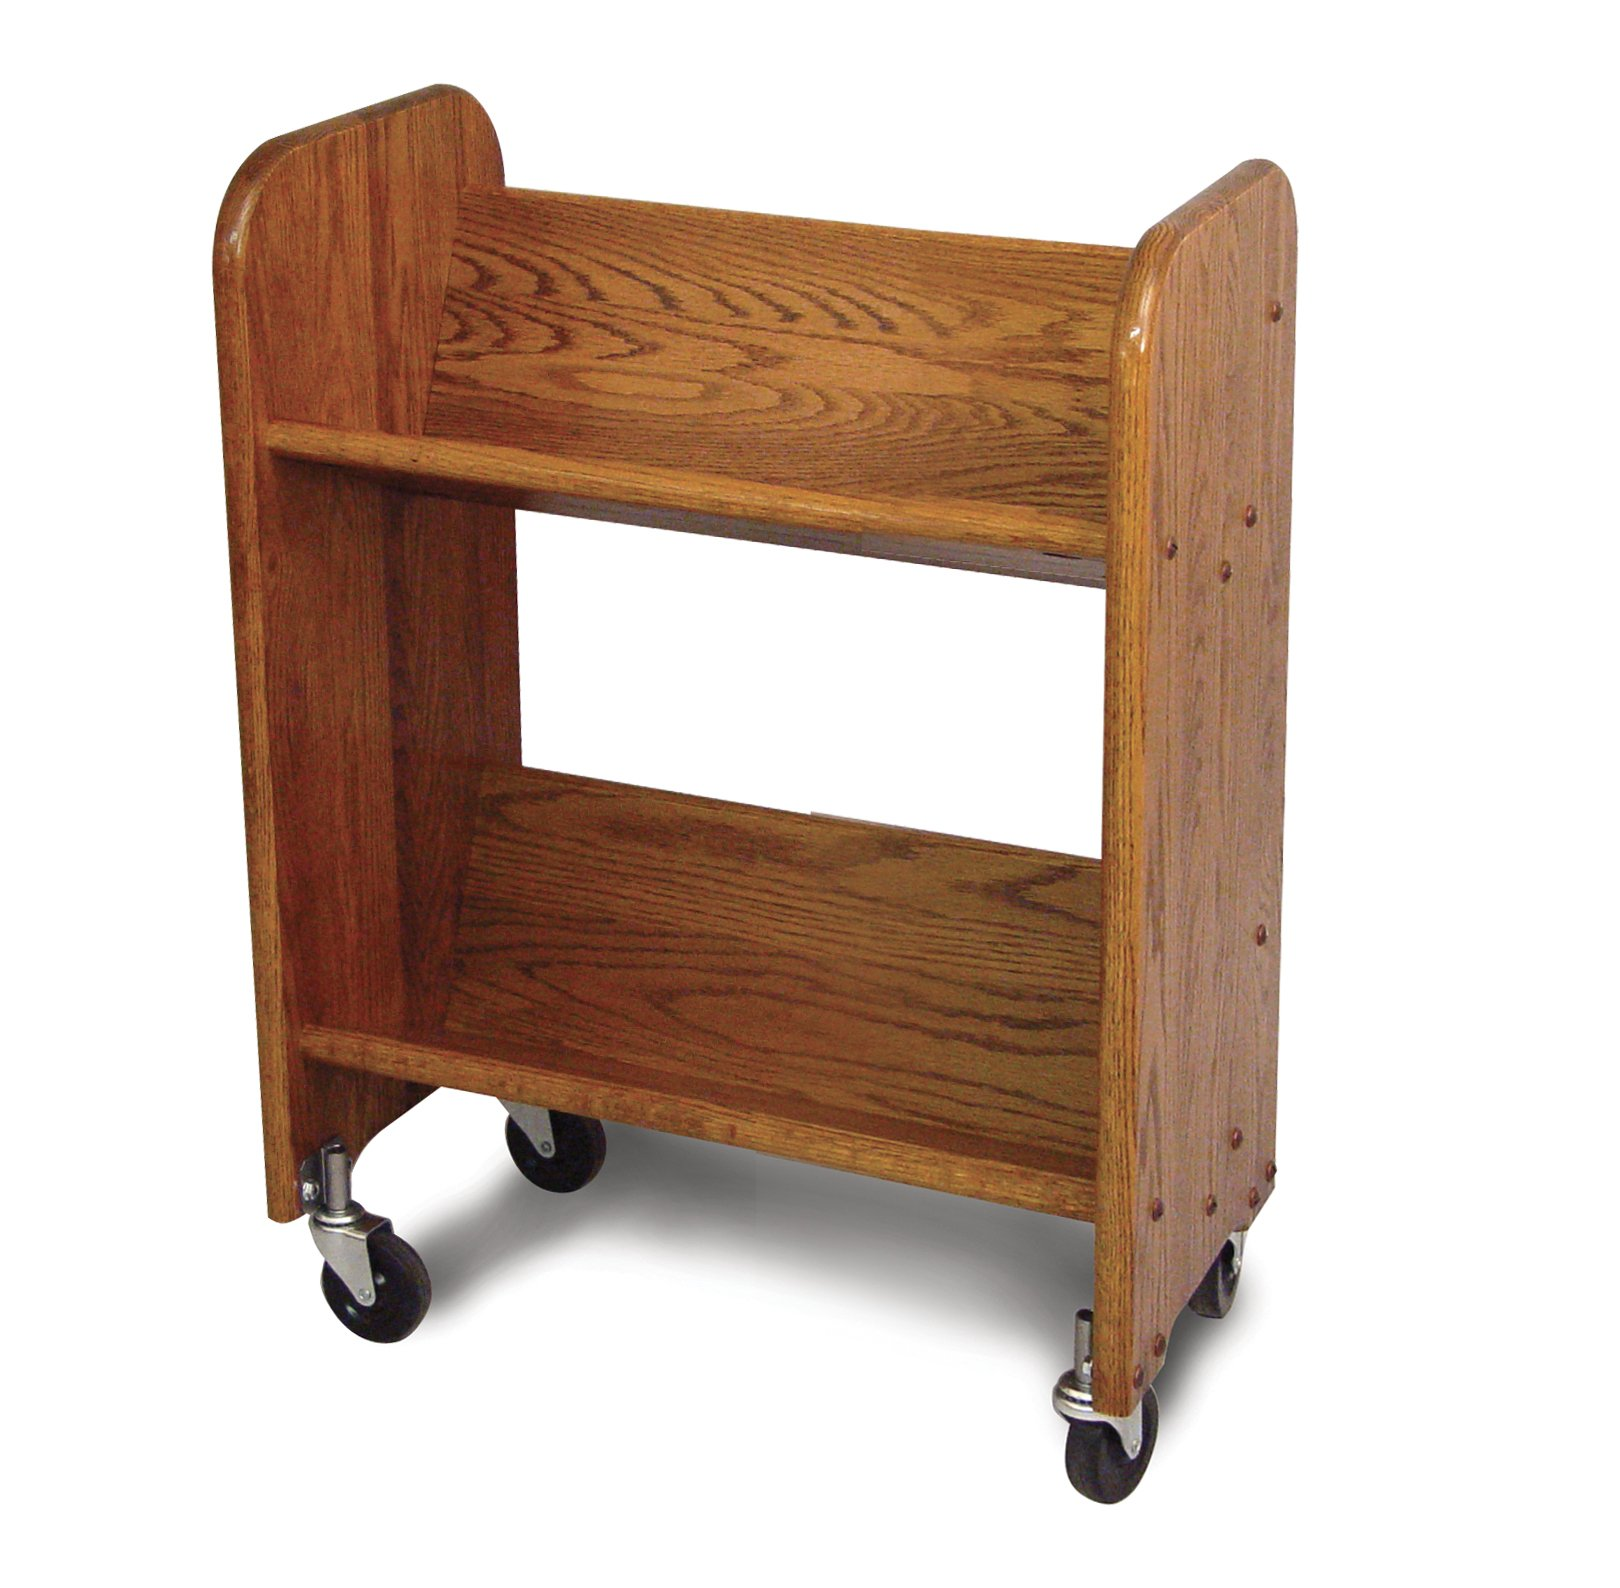 Catskill Craftsmen Bookmaster Rack with Tilted Shelves, Walnut Stained Oak Grain